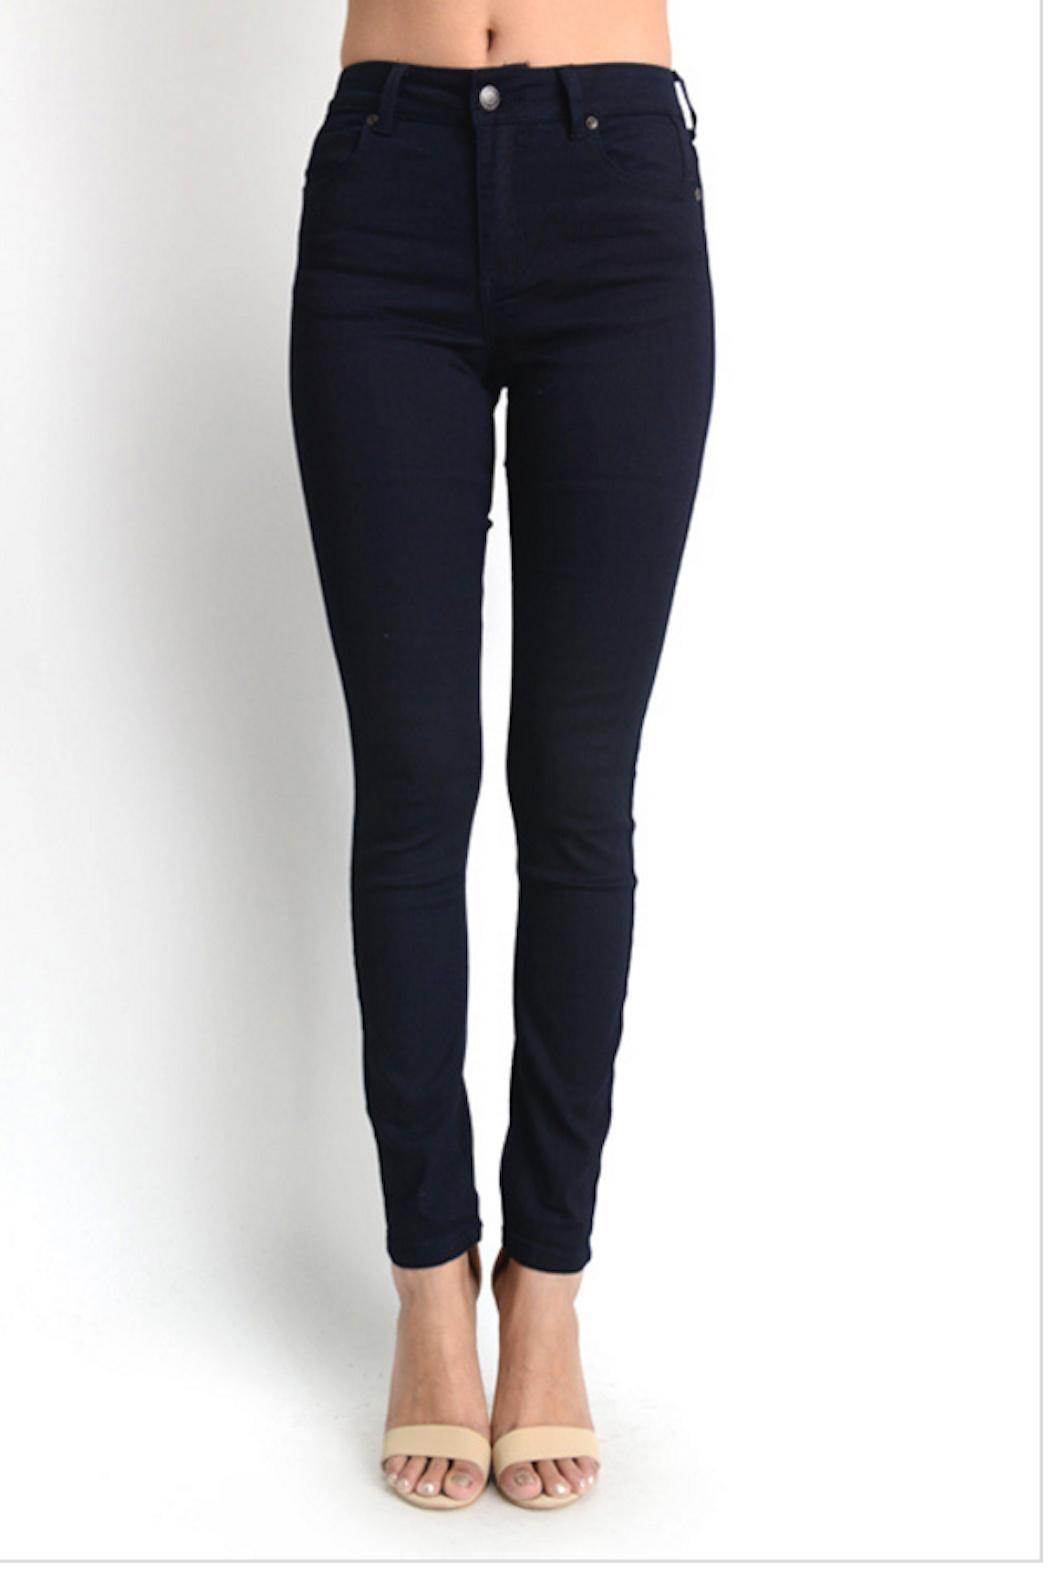 Gina Louise Navy Skinny Jeans - Front Cropped Image